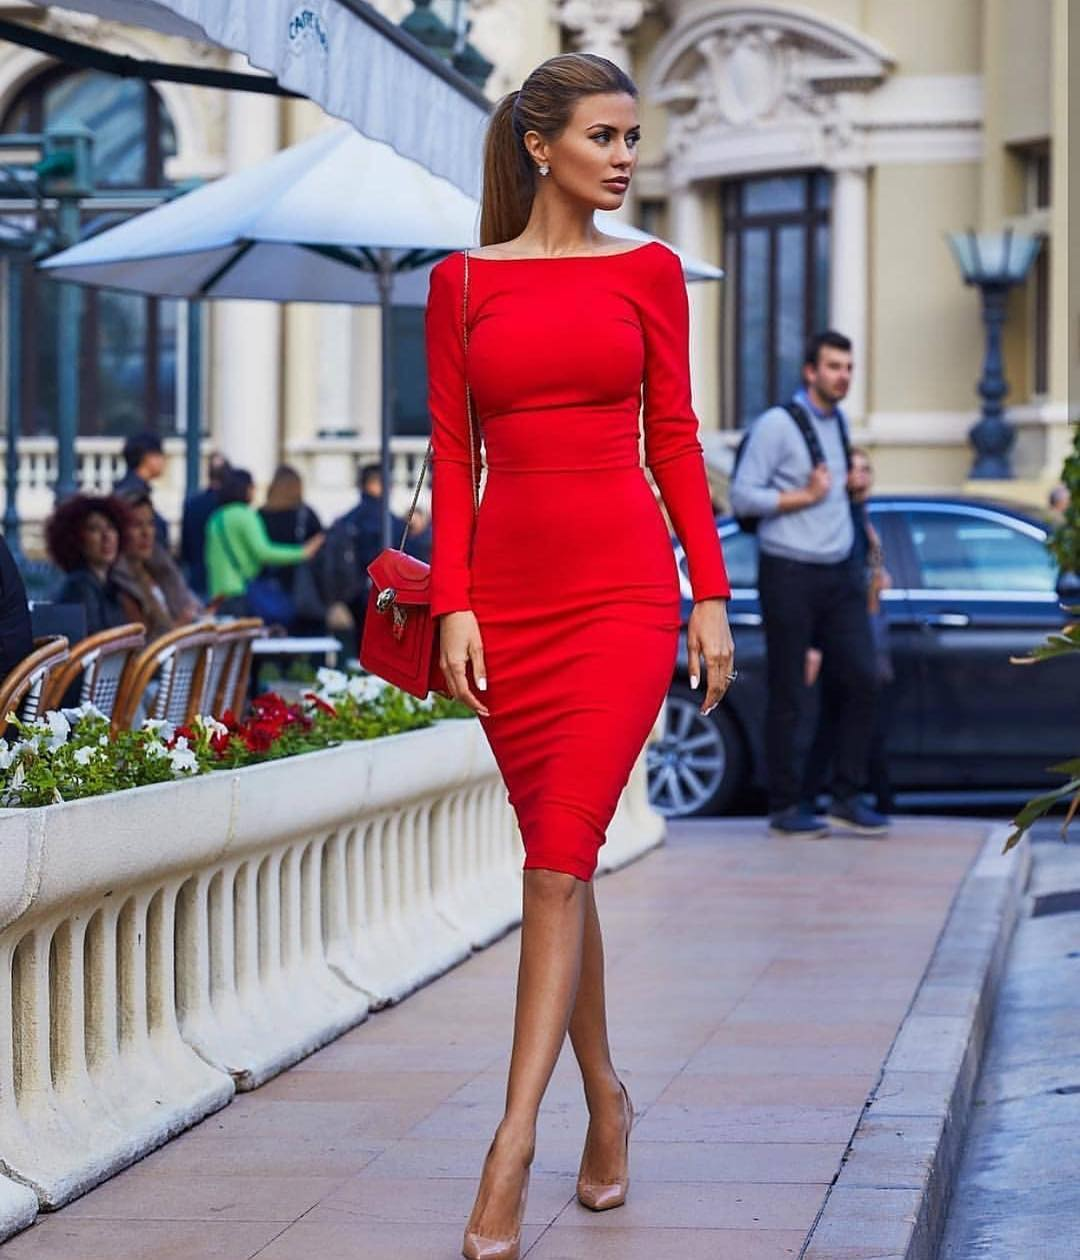 Boatneck Red Slim Dress With Long Sleeves For Fall 2019